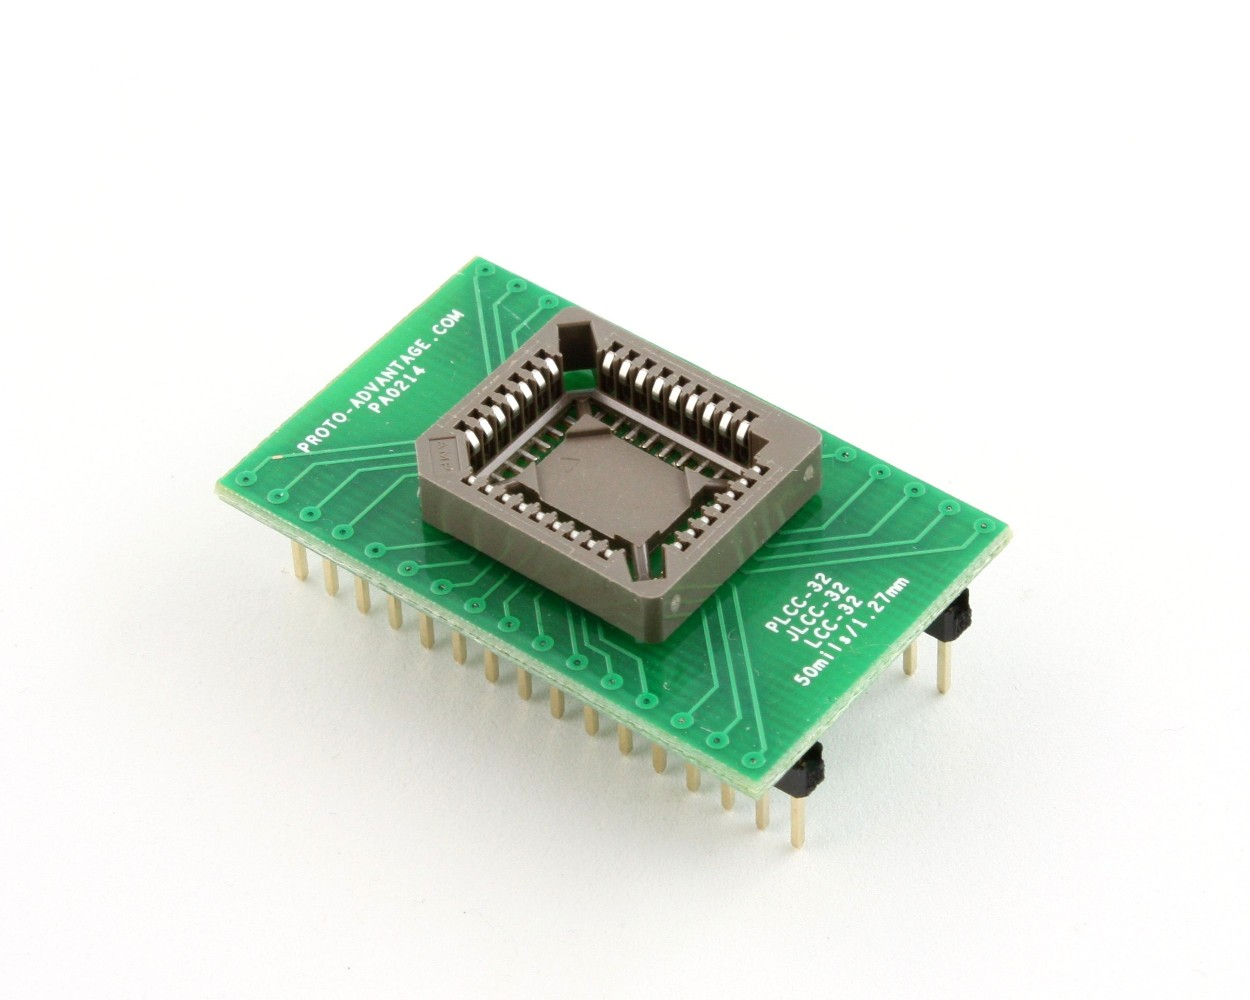 PLCC-32 Socket to DIP-32 Adapter (50 mils / 1.27 mm pitch) 0